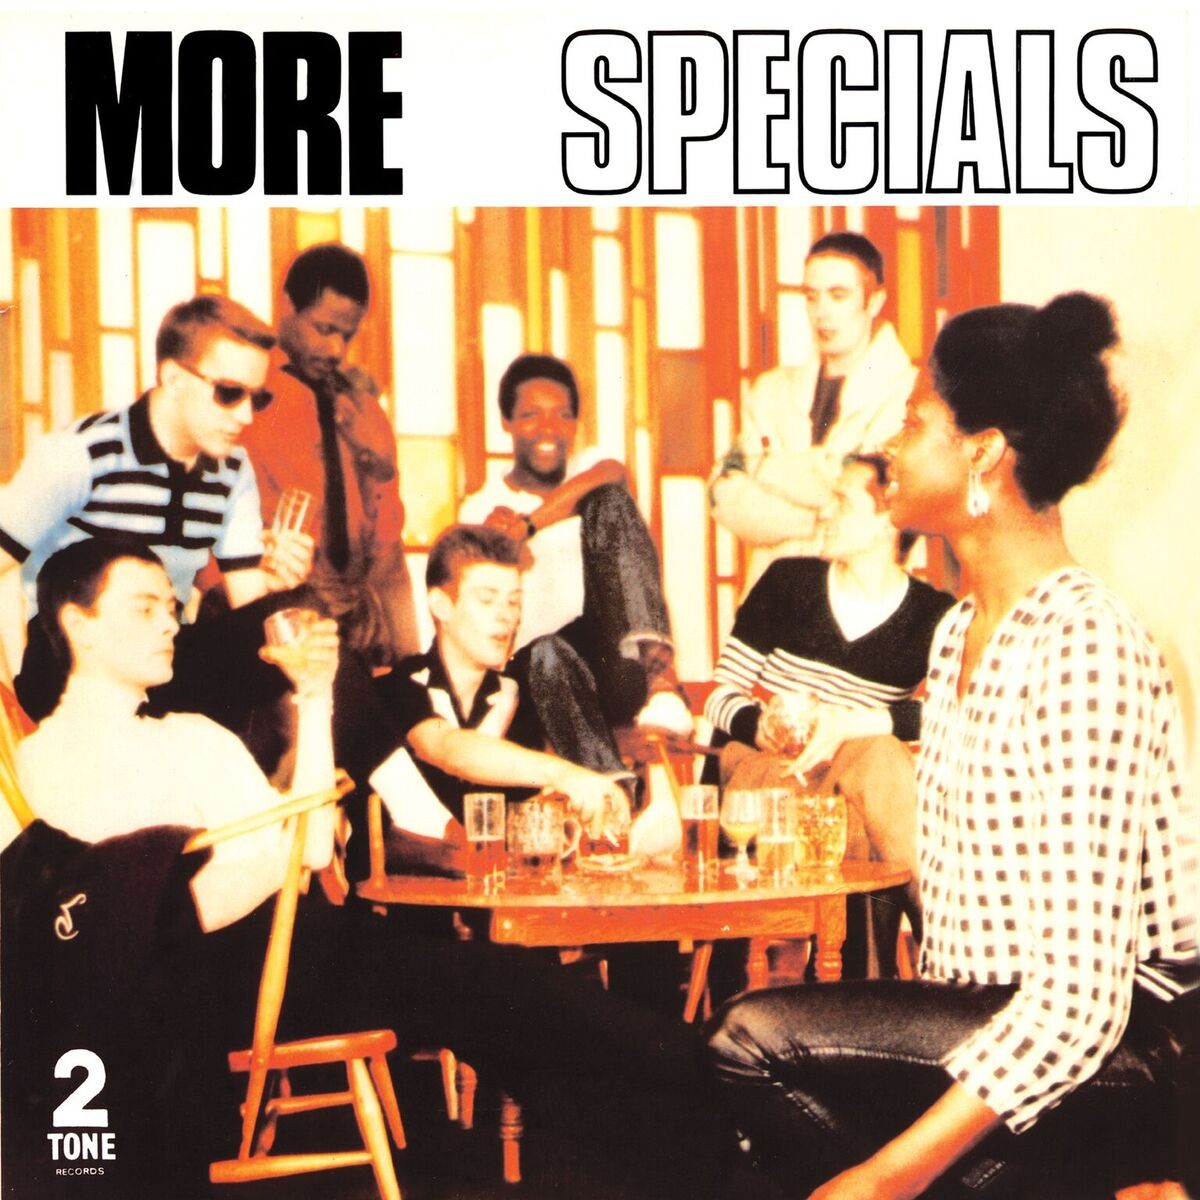 The Specials - More Specials Vinyl LP